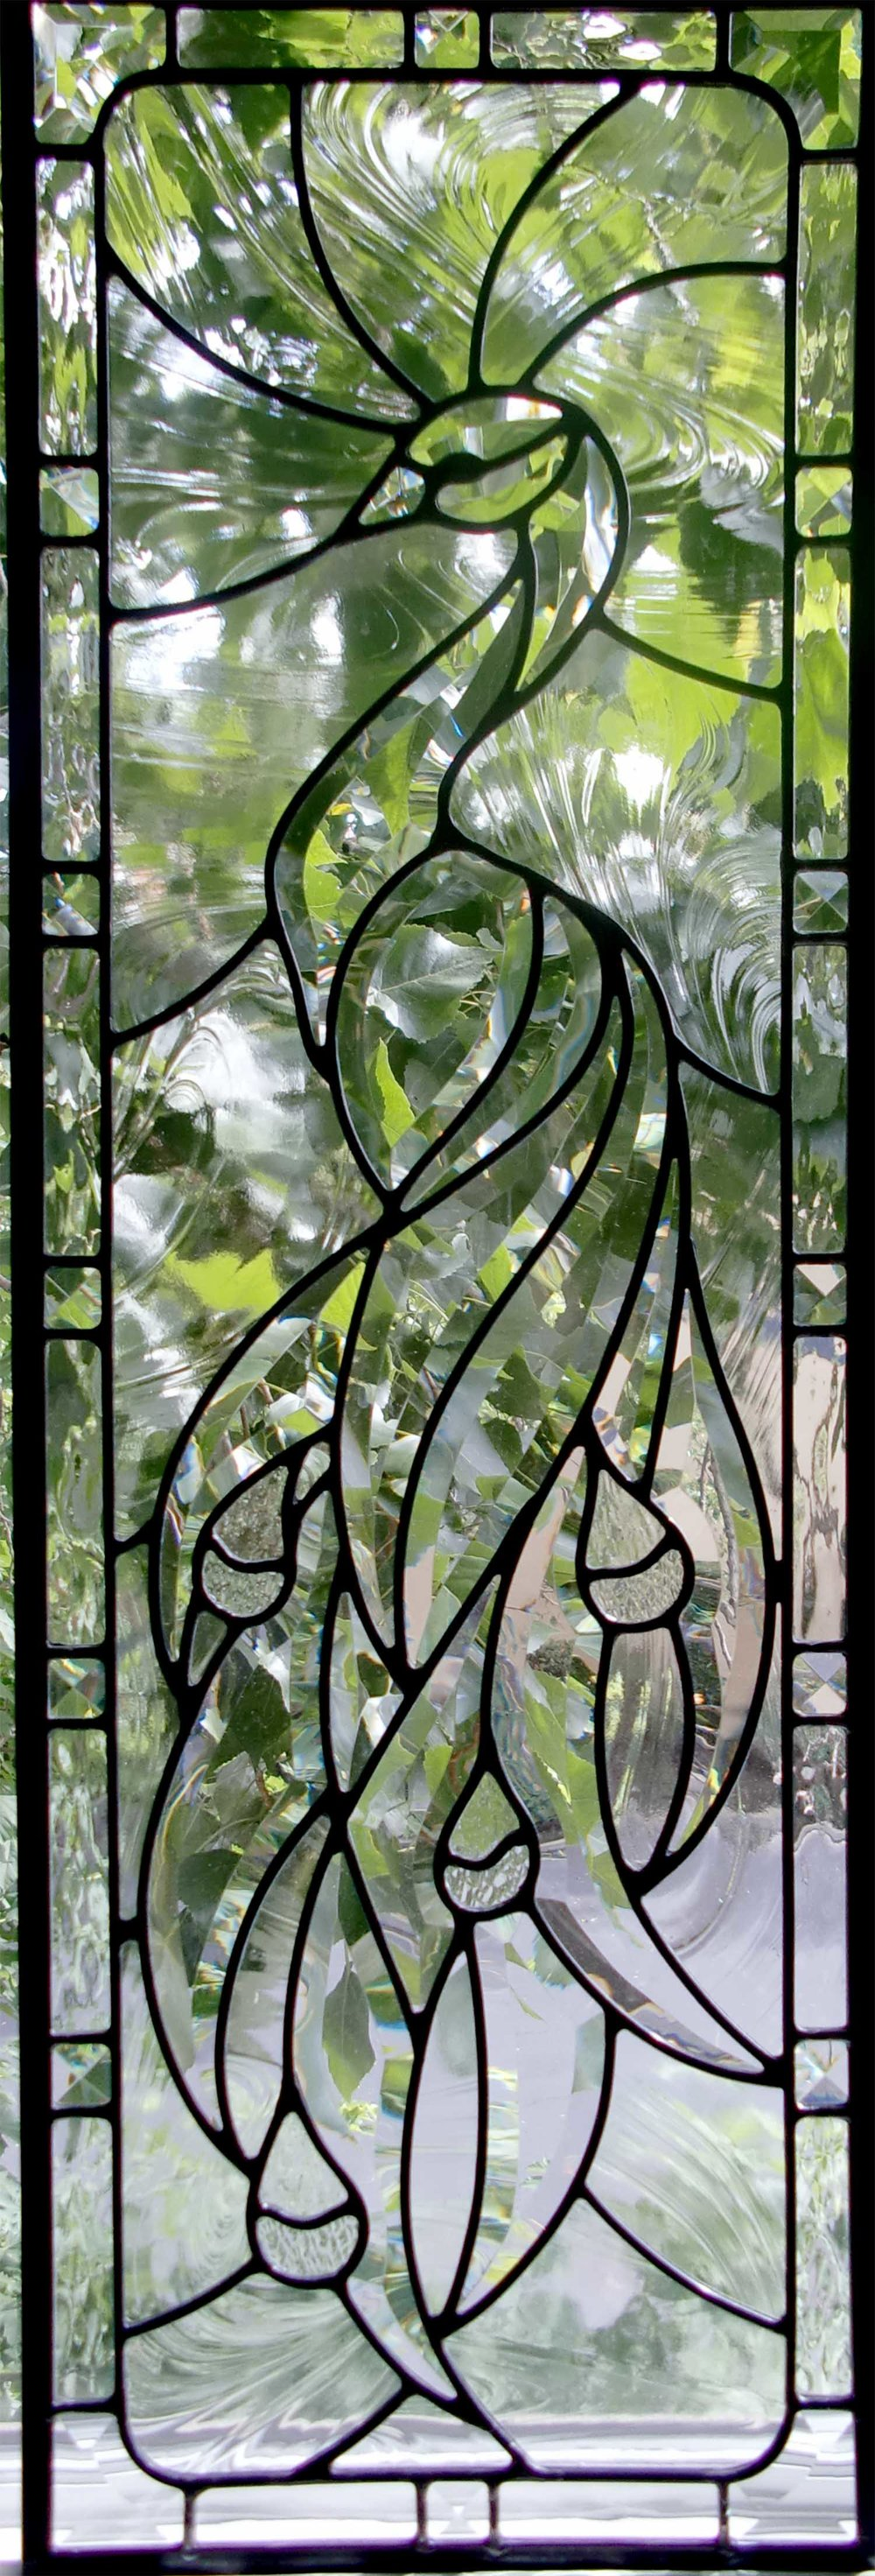 bevel cluster peacock baroque glass clear texture beveled leaded glass stained glass window palo alto atherton california san francisco.jpg